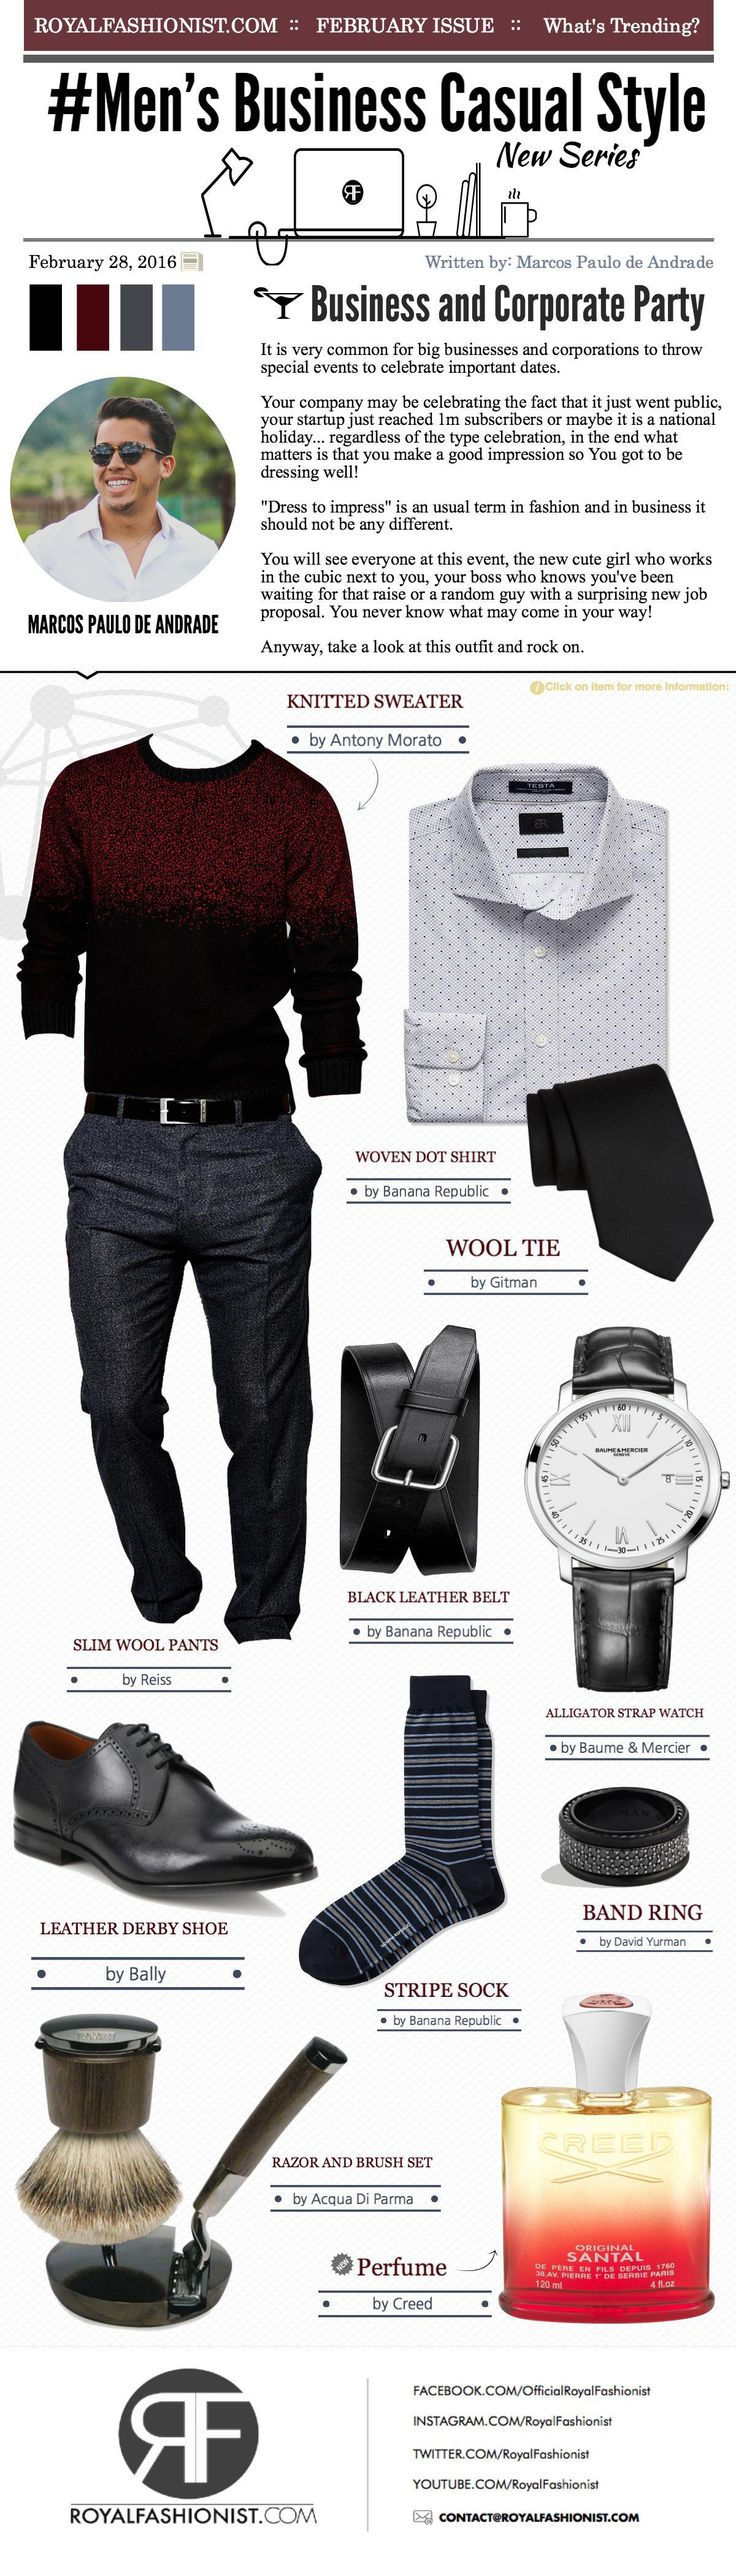 Men's Business Casual Style: Corporate Party Outfit | Royal Fashionist